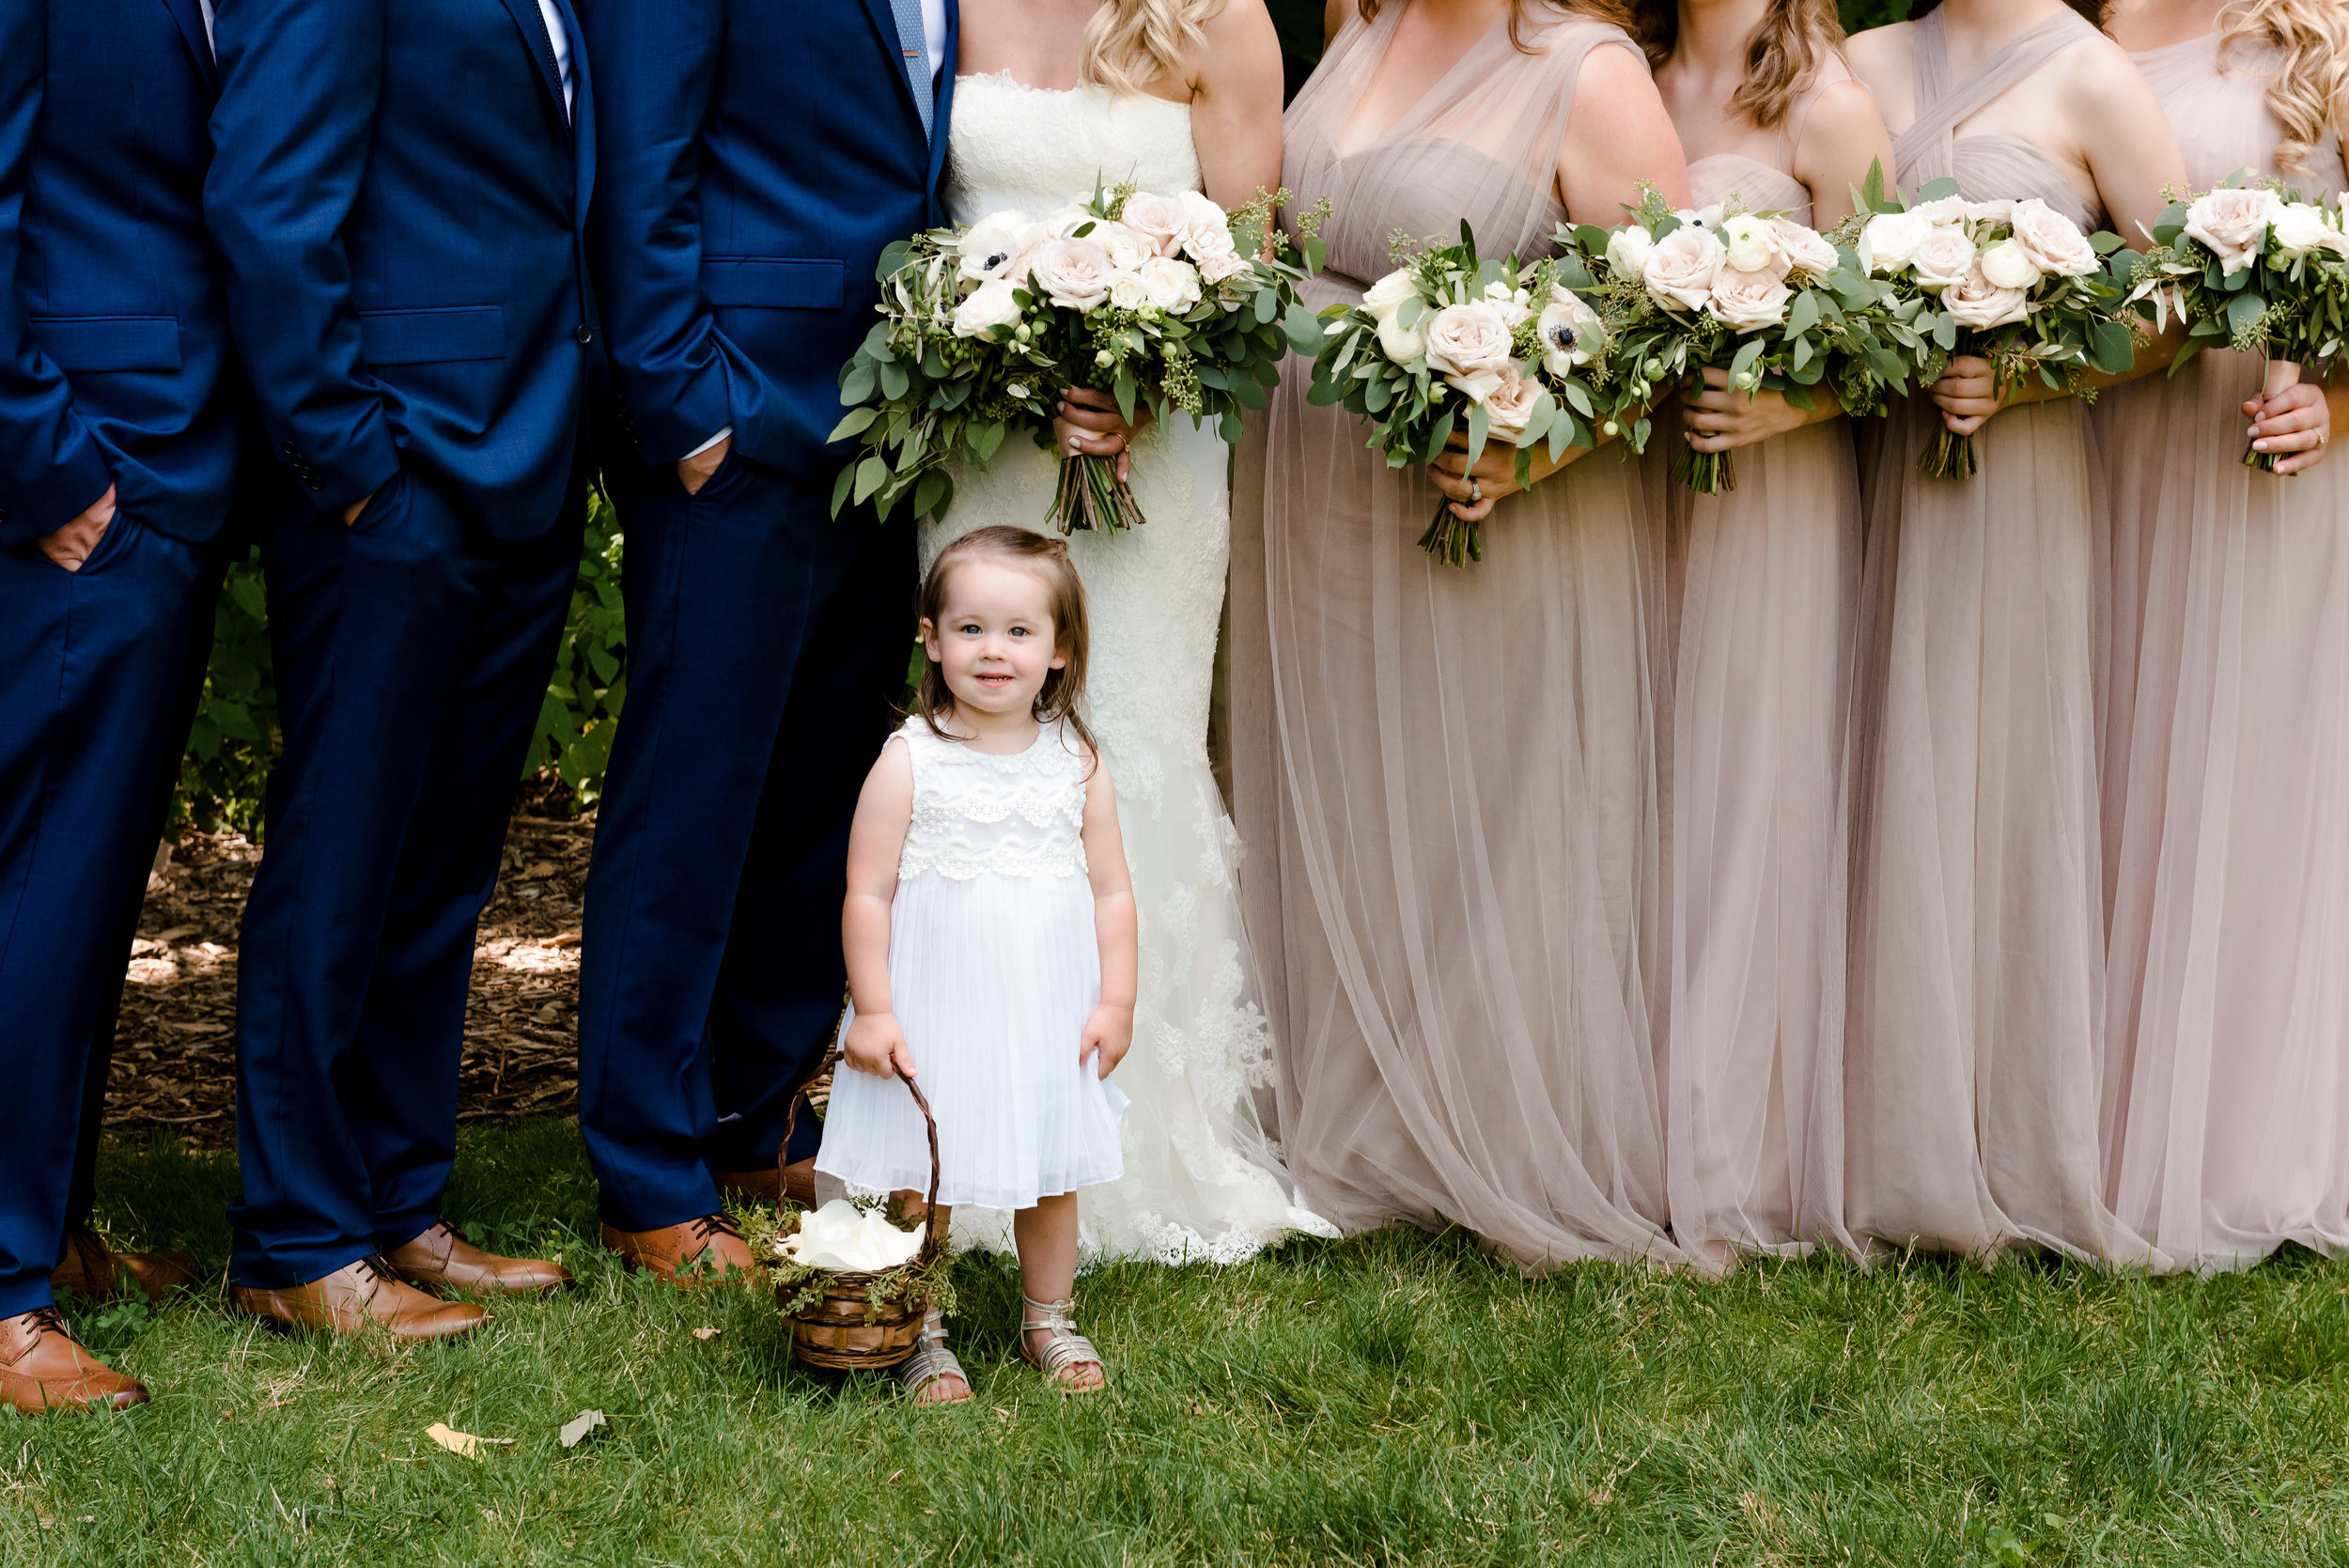 Adorable Flower Girl - Twin Cities Wedding Photographer - Laura Robinson Photography